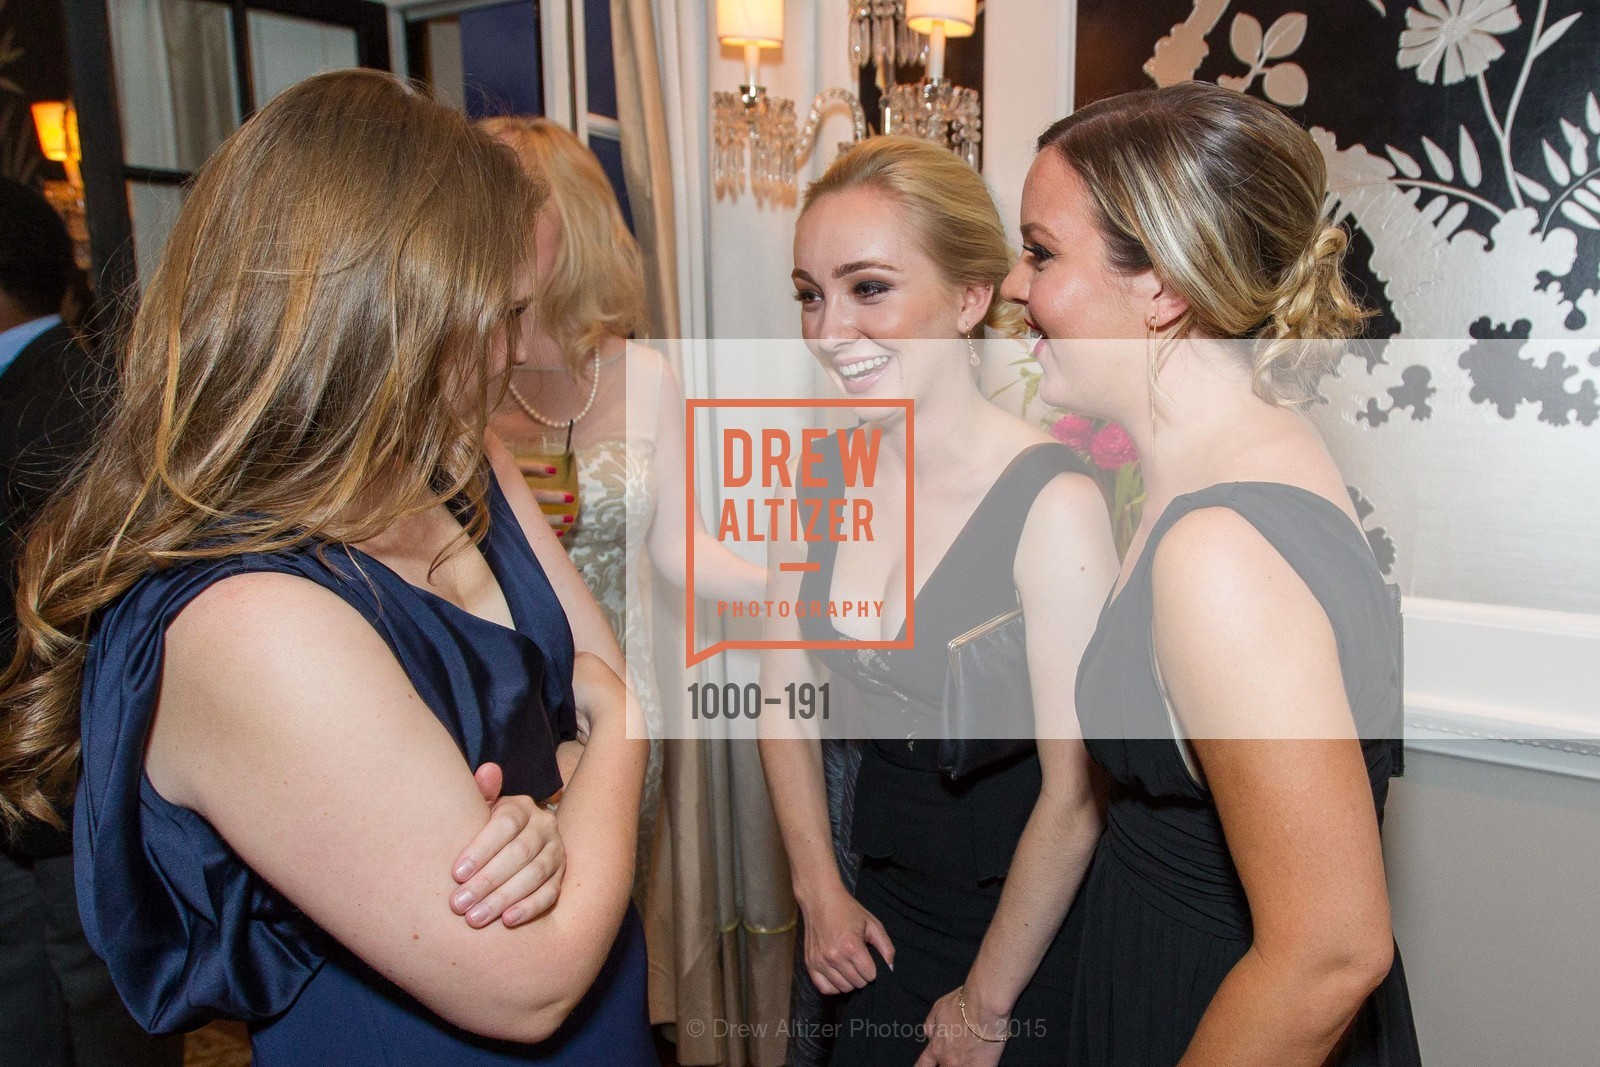 Jamie Taylor, Morgan Barnes, Dana Nicholson, Spinsters of San Francisco Annual Ball 2015, Penthouse at the Fairmont San Francisco (950 Mason Street). 950 Mason Street, June 28th, 2015,Drew Altizer, Drew Altizer Photography, full-service agency, private events, San Francisco photographer, photographer california